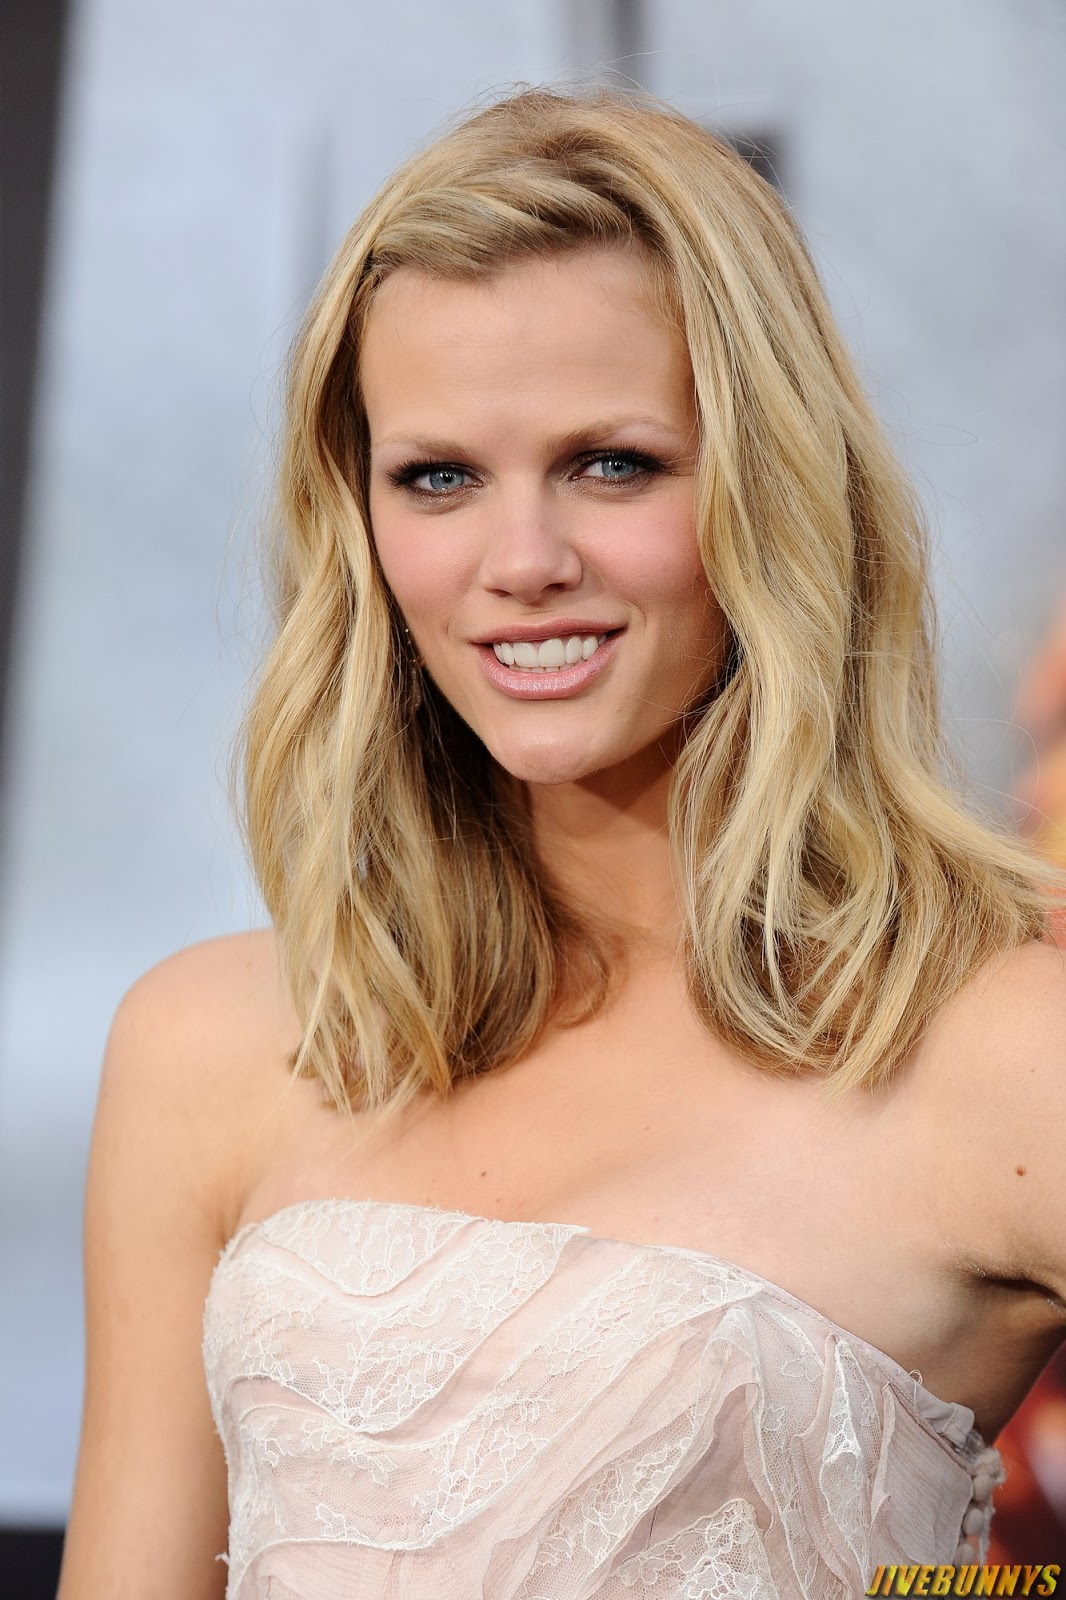 nude photos of brooklyn decker